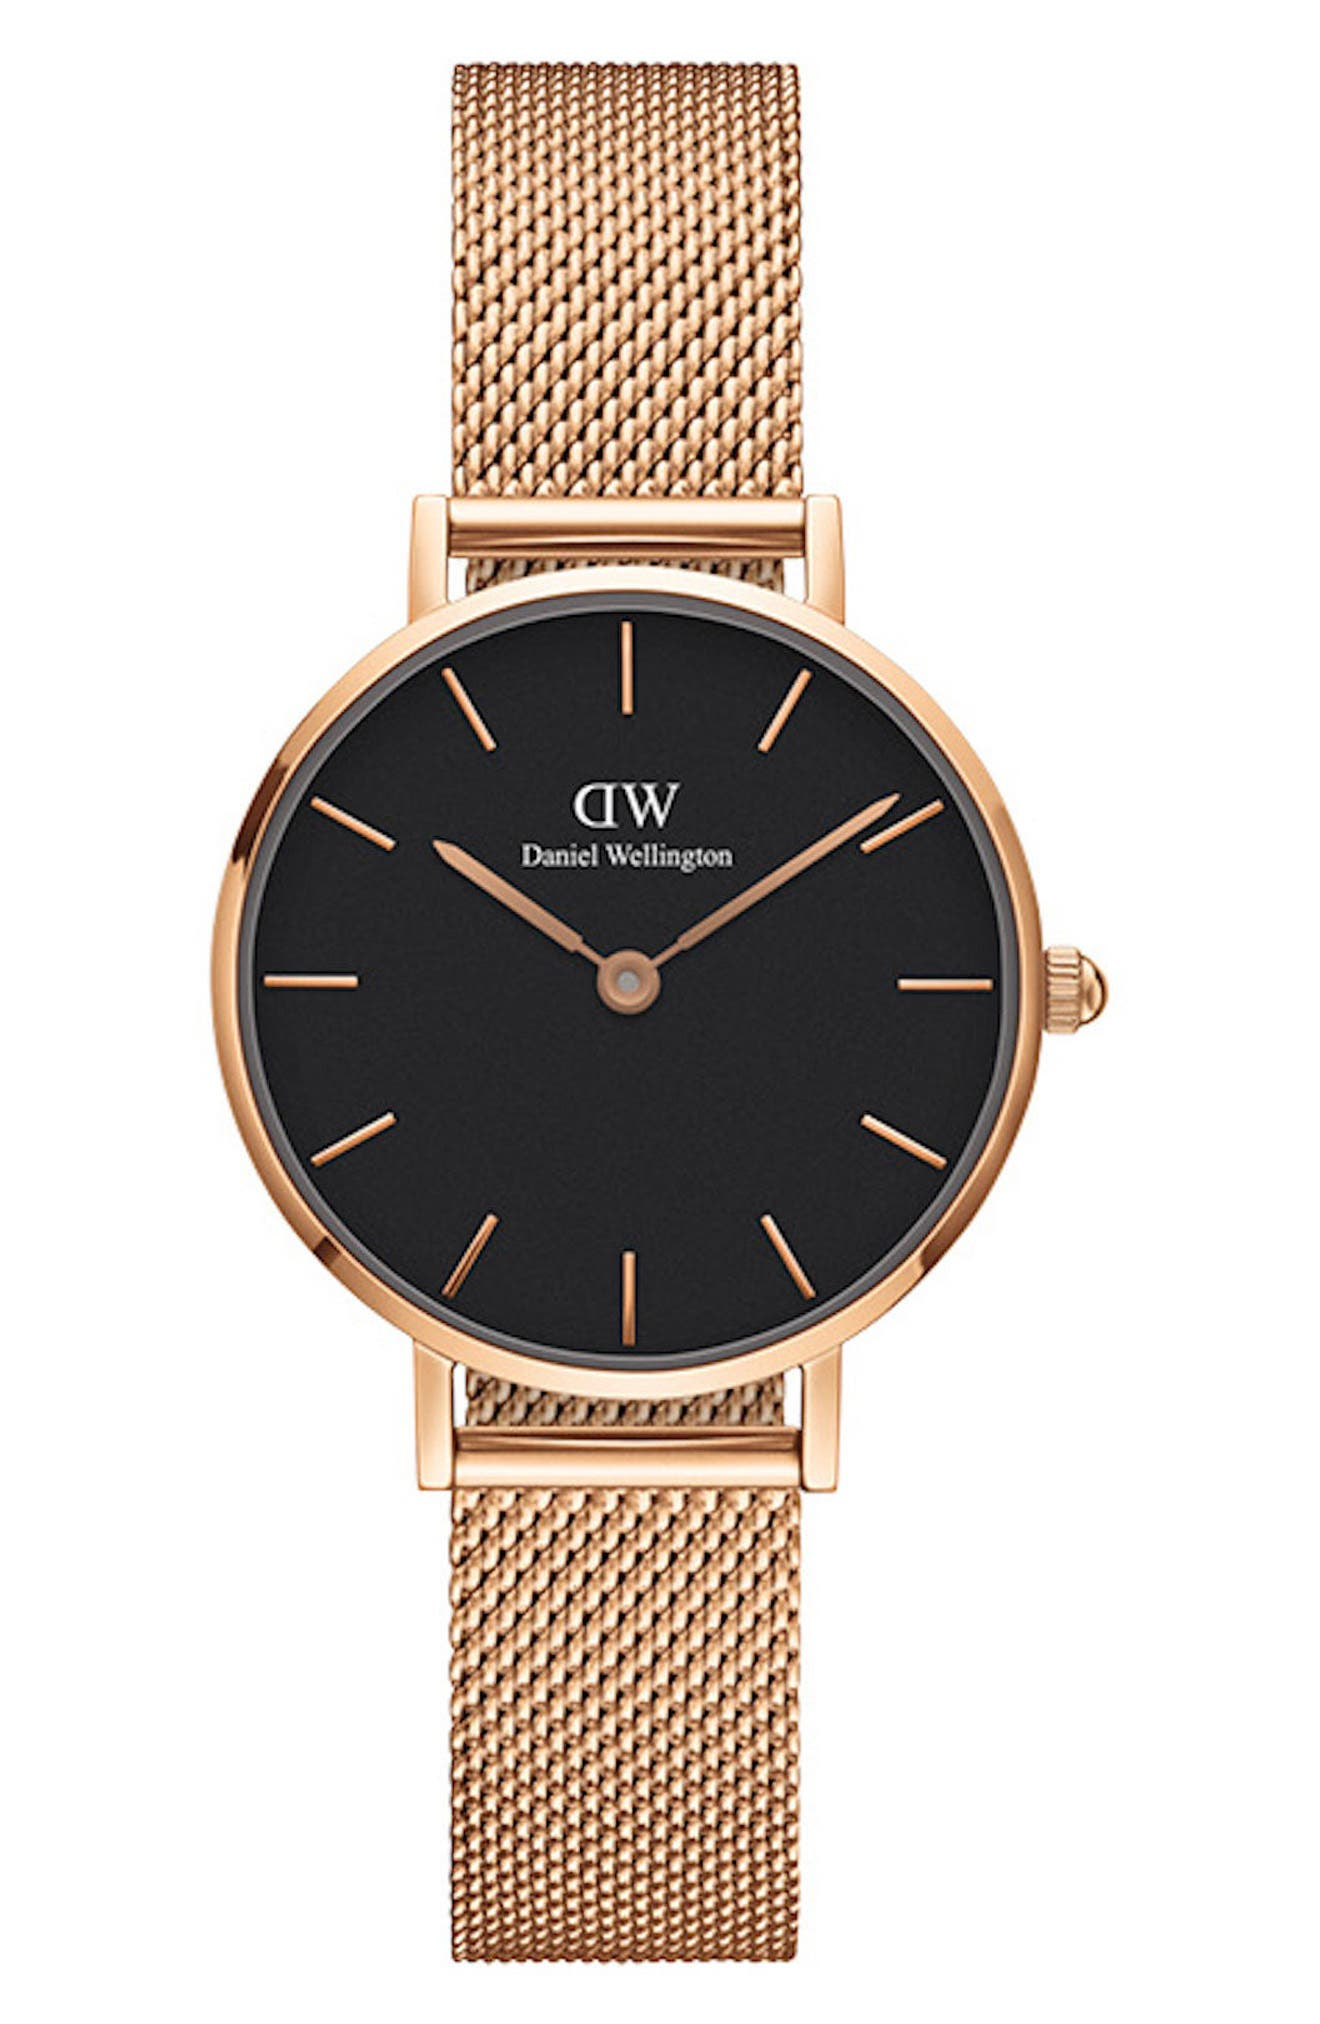 DANIEL WELLINGTON Classic Petite Mesh Strap Watch, 28mm, Main, color, ROSE GOLD/ BLACK / ROSE GOLD